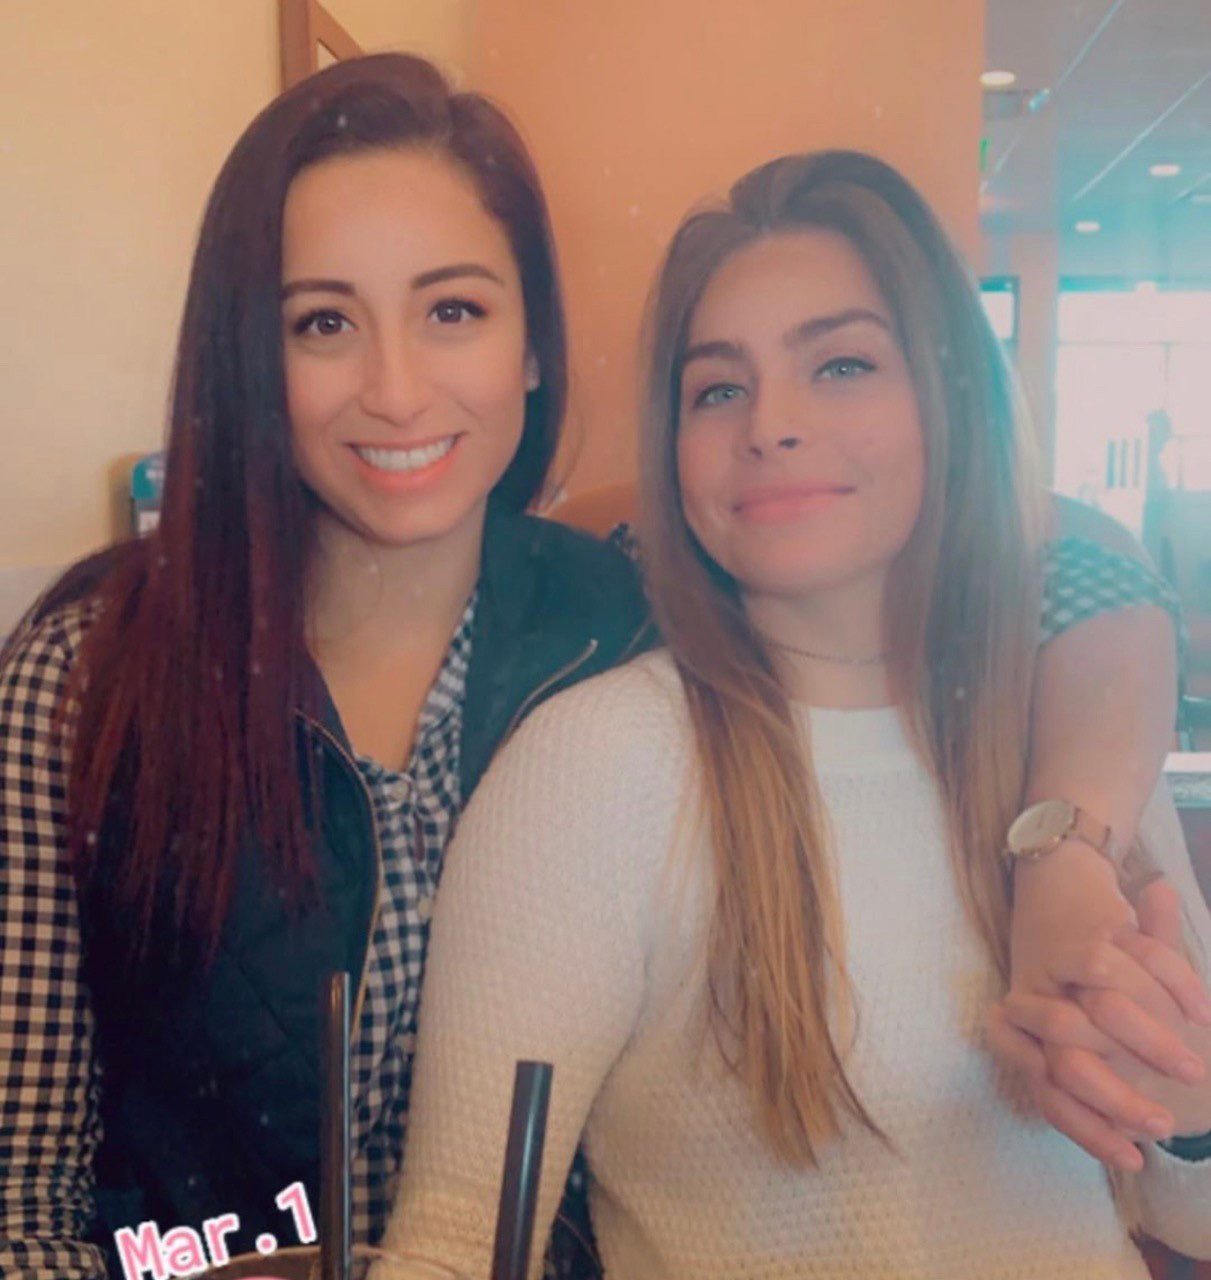 Stephanie Mayorga (left) and Paige Escalera (right), have not been seen since April 15th